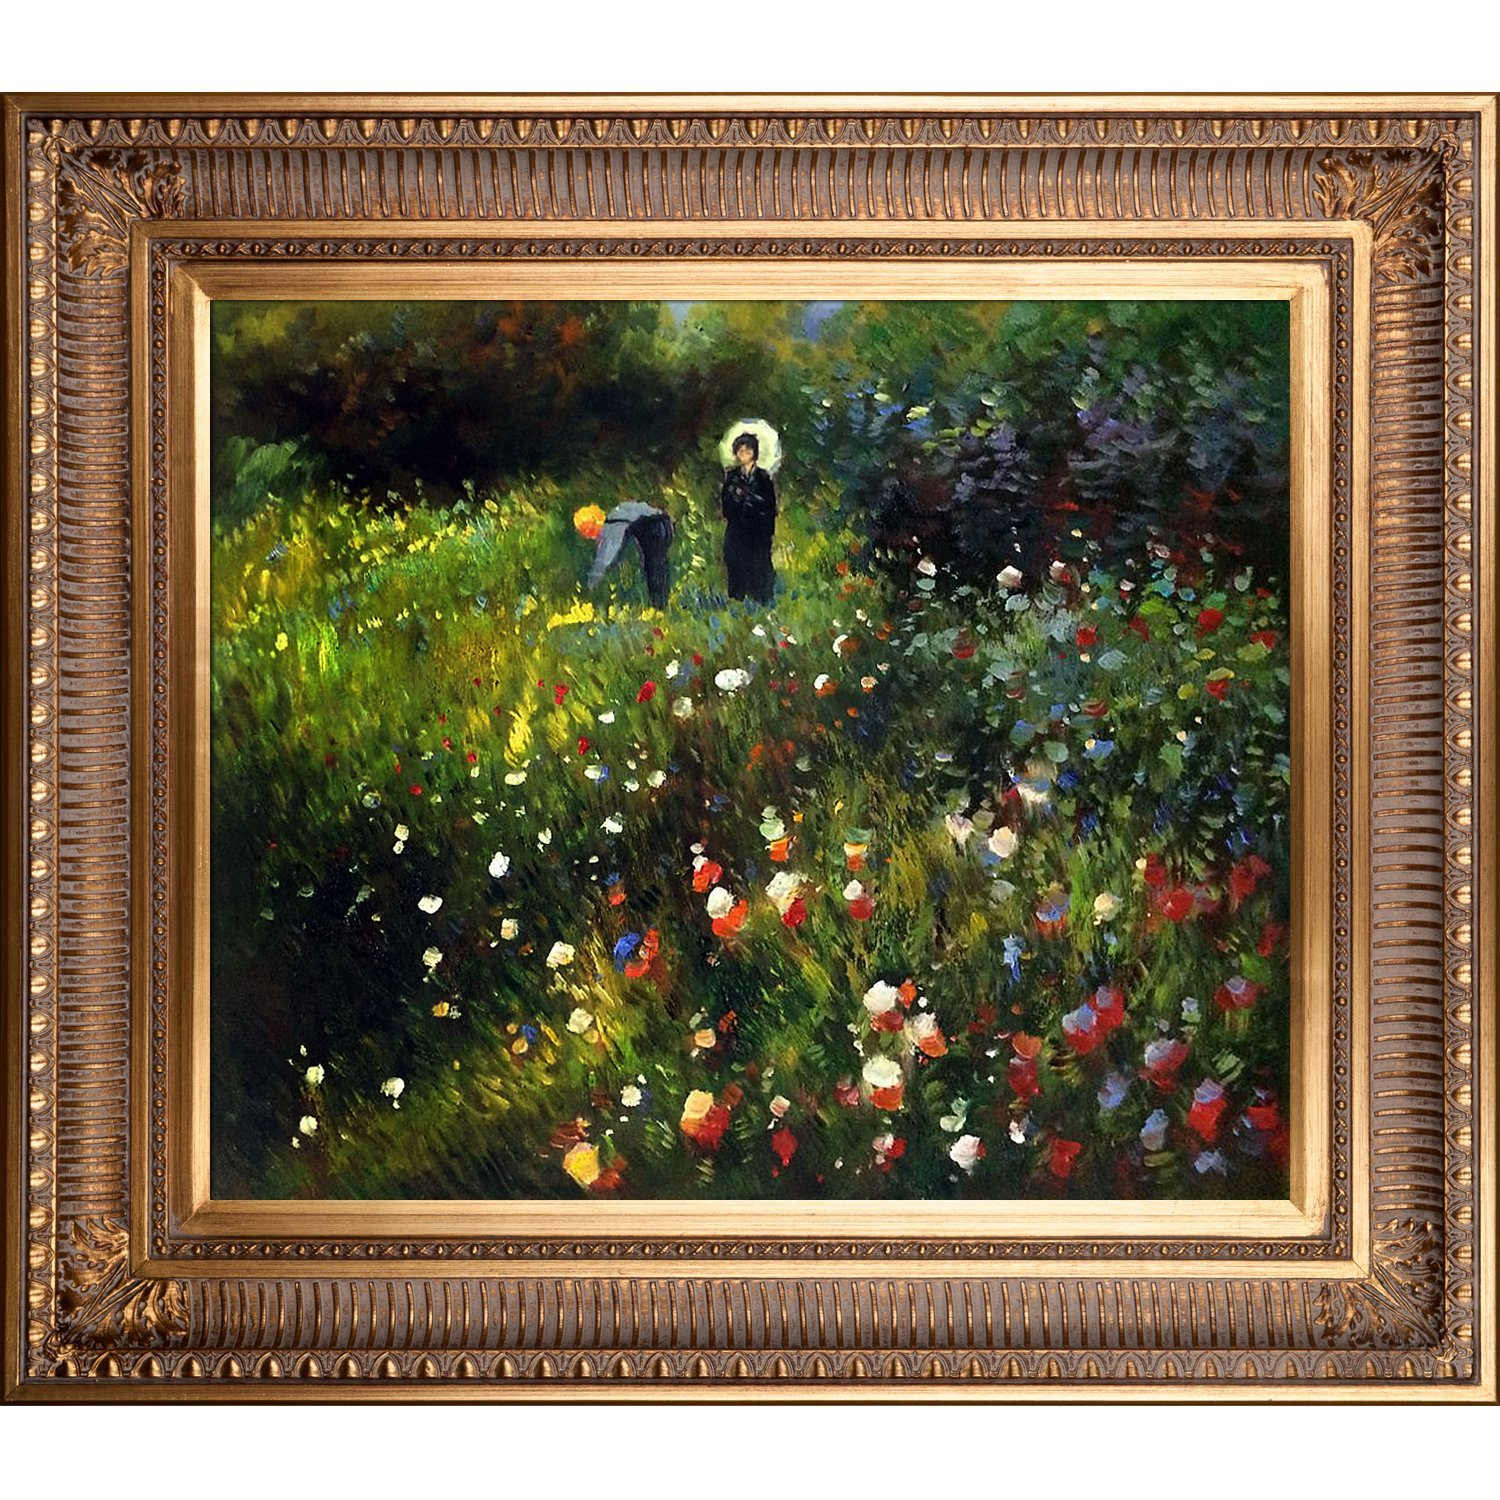 overstockArt Woman Oil Painting with a Parasol in a Garden Frau mi Sonnenschirm with Regal Gold Frame by Renoir